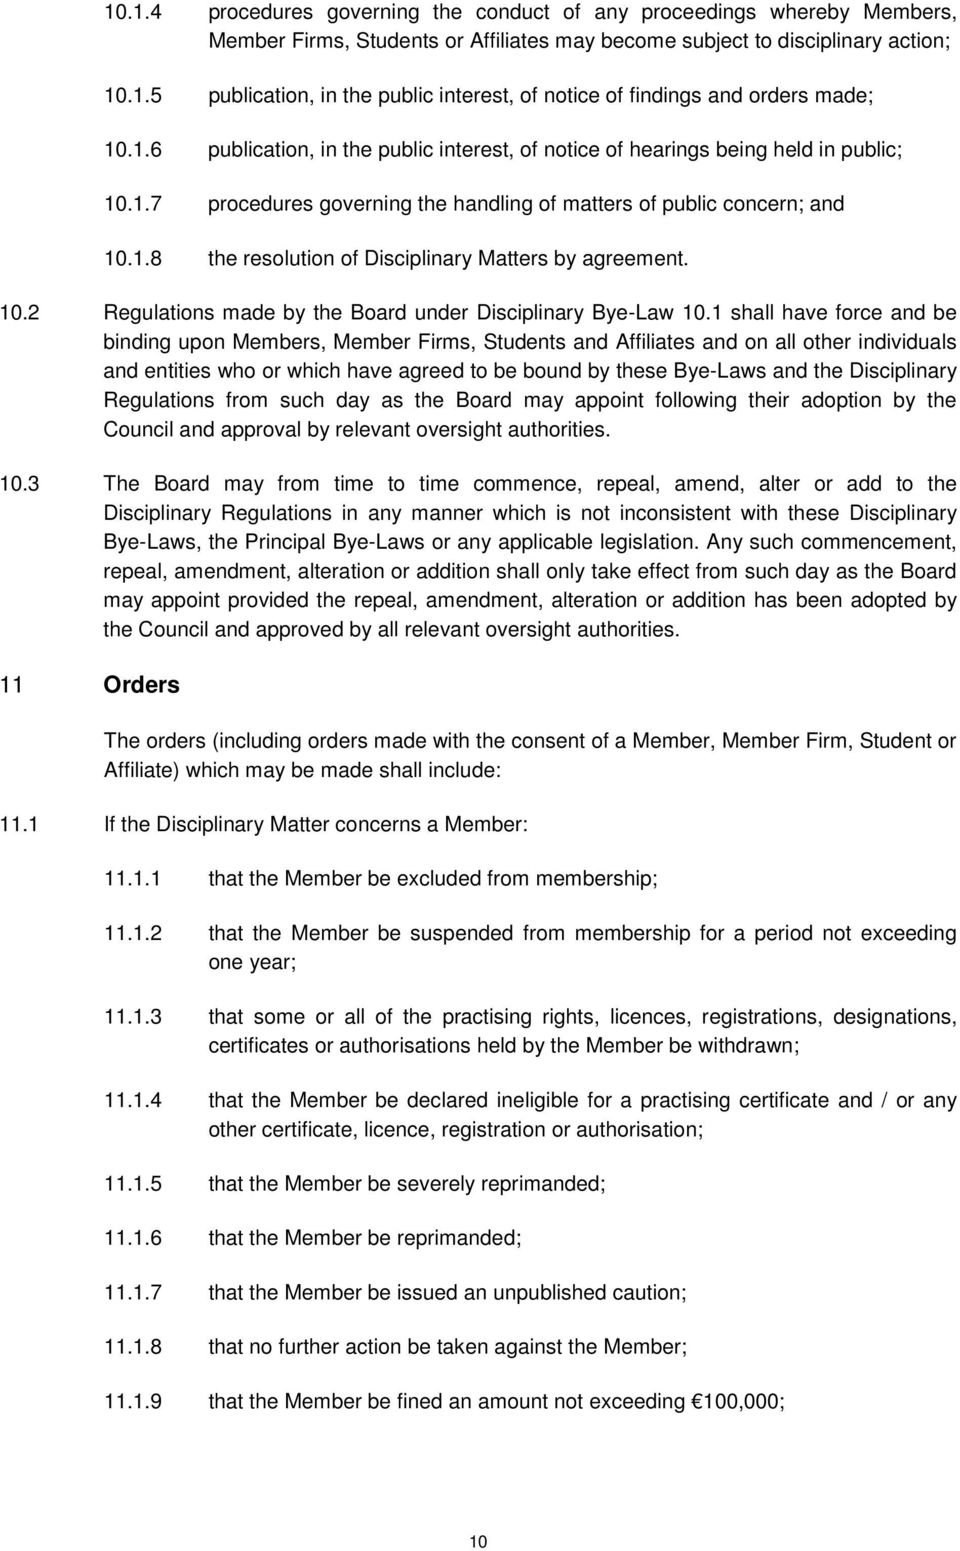 10.2 Regulations made by the Board under Disciplinary Bye-Law 10.